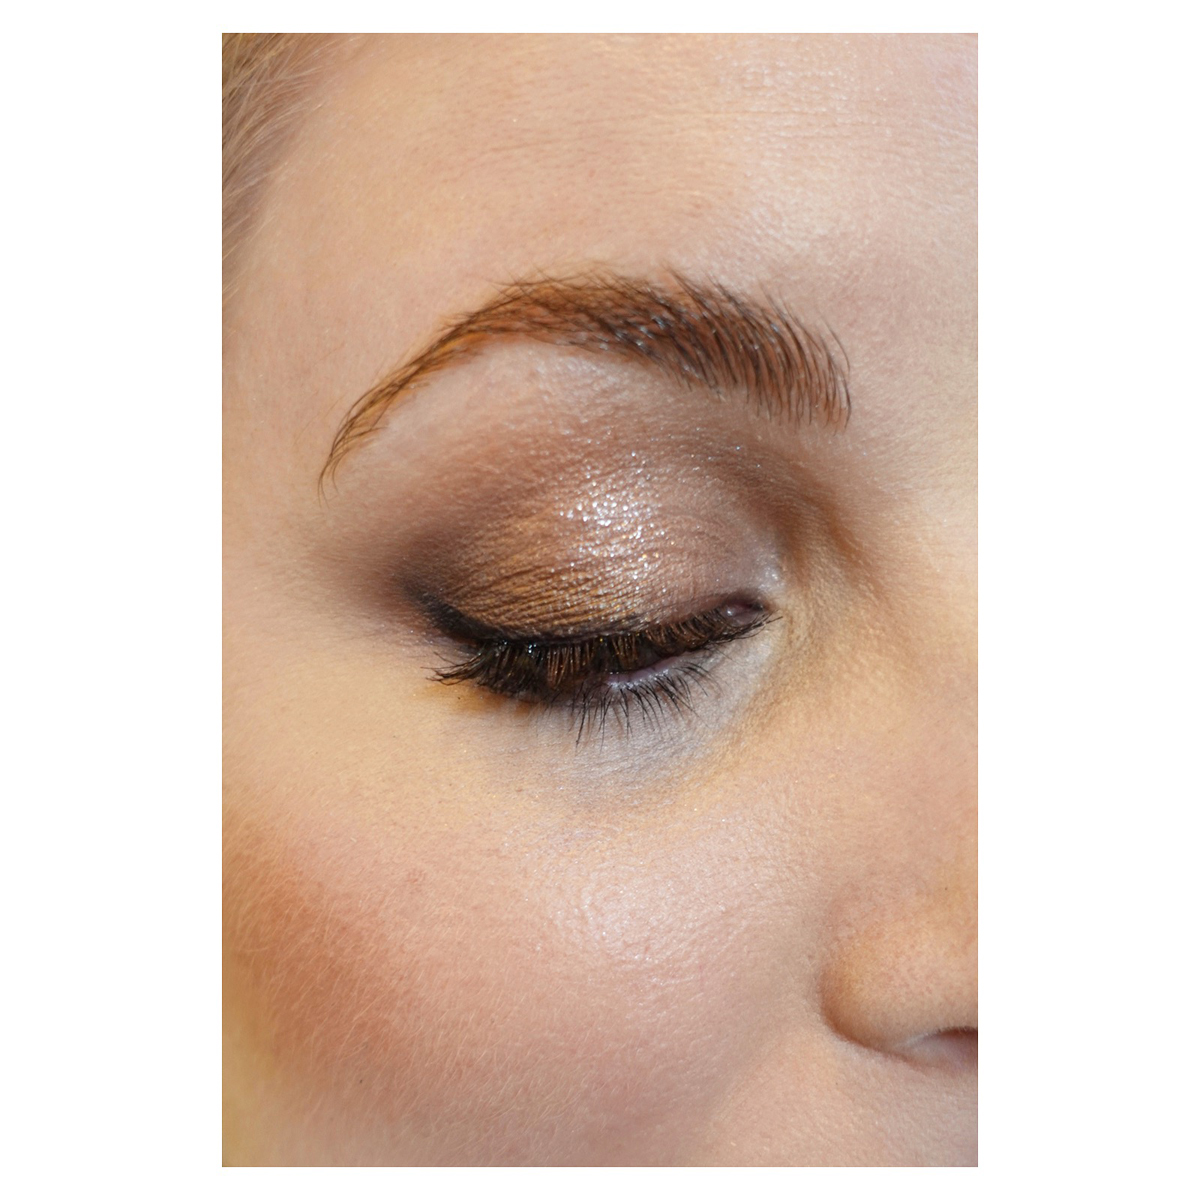 taupe shimmery eye makeup natural cystic hormonal acne coverup